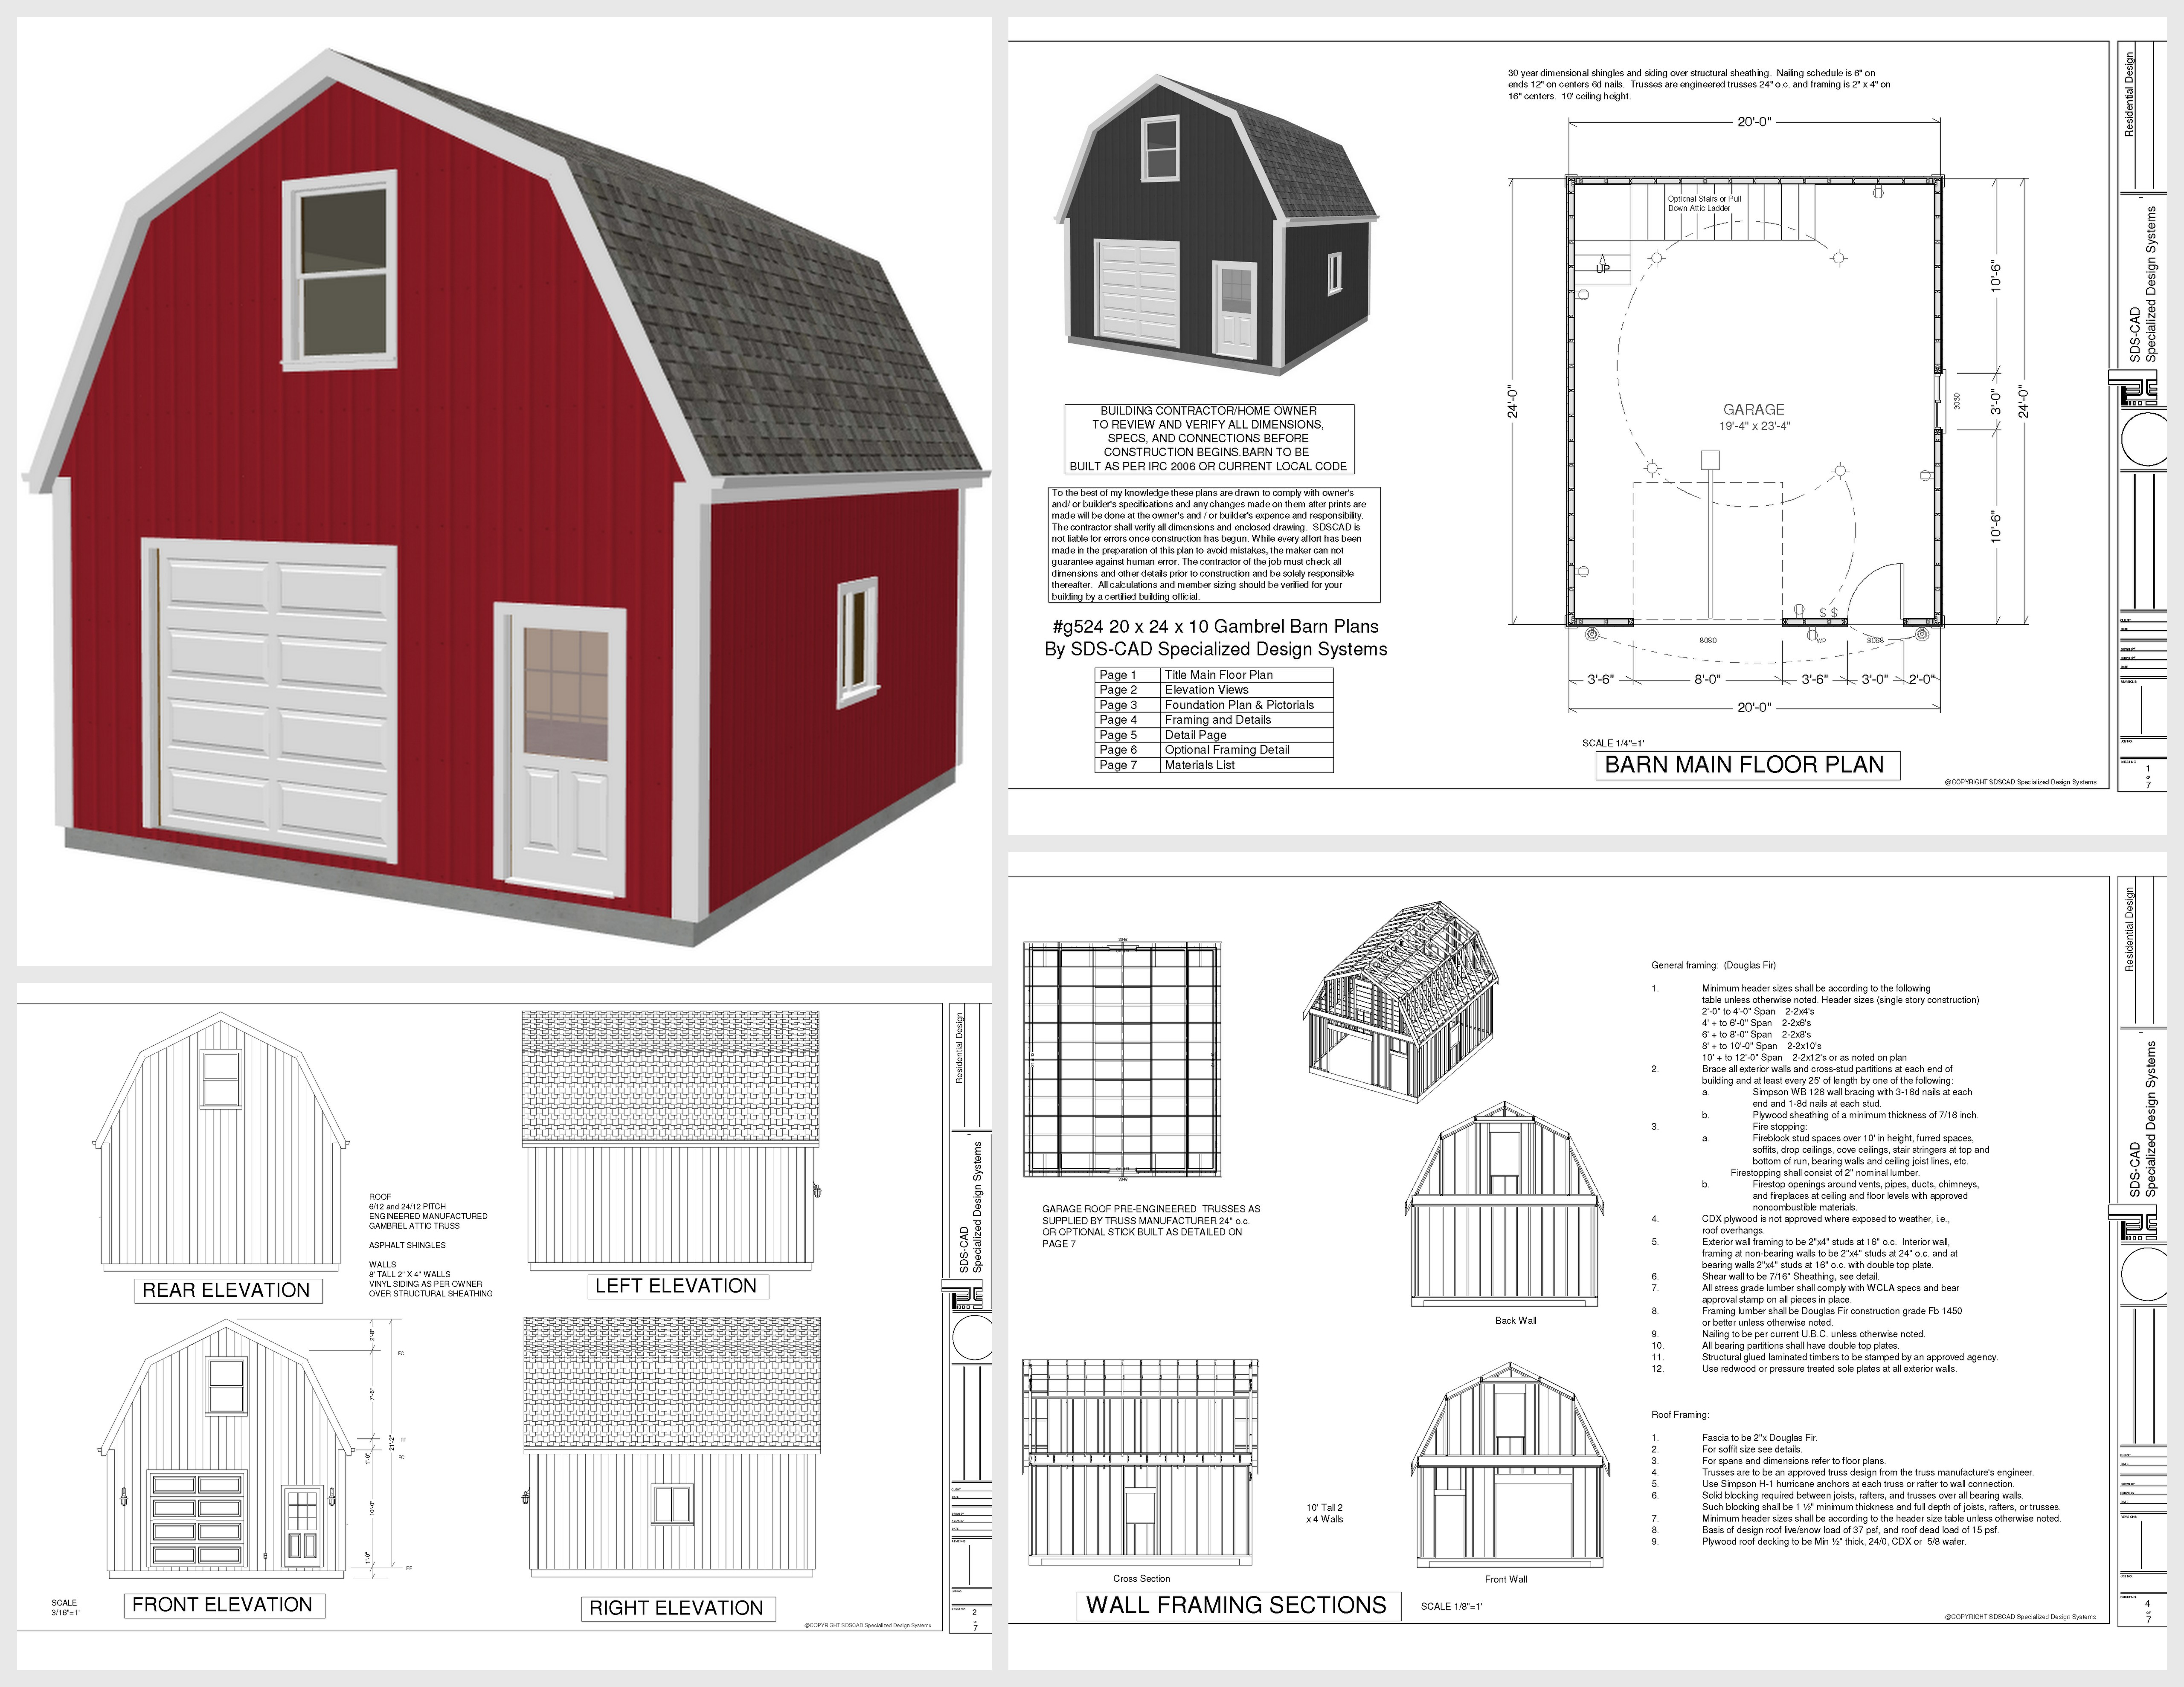 Garage plans sds plans for Small barn plans with loft